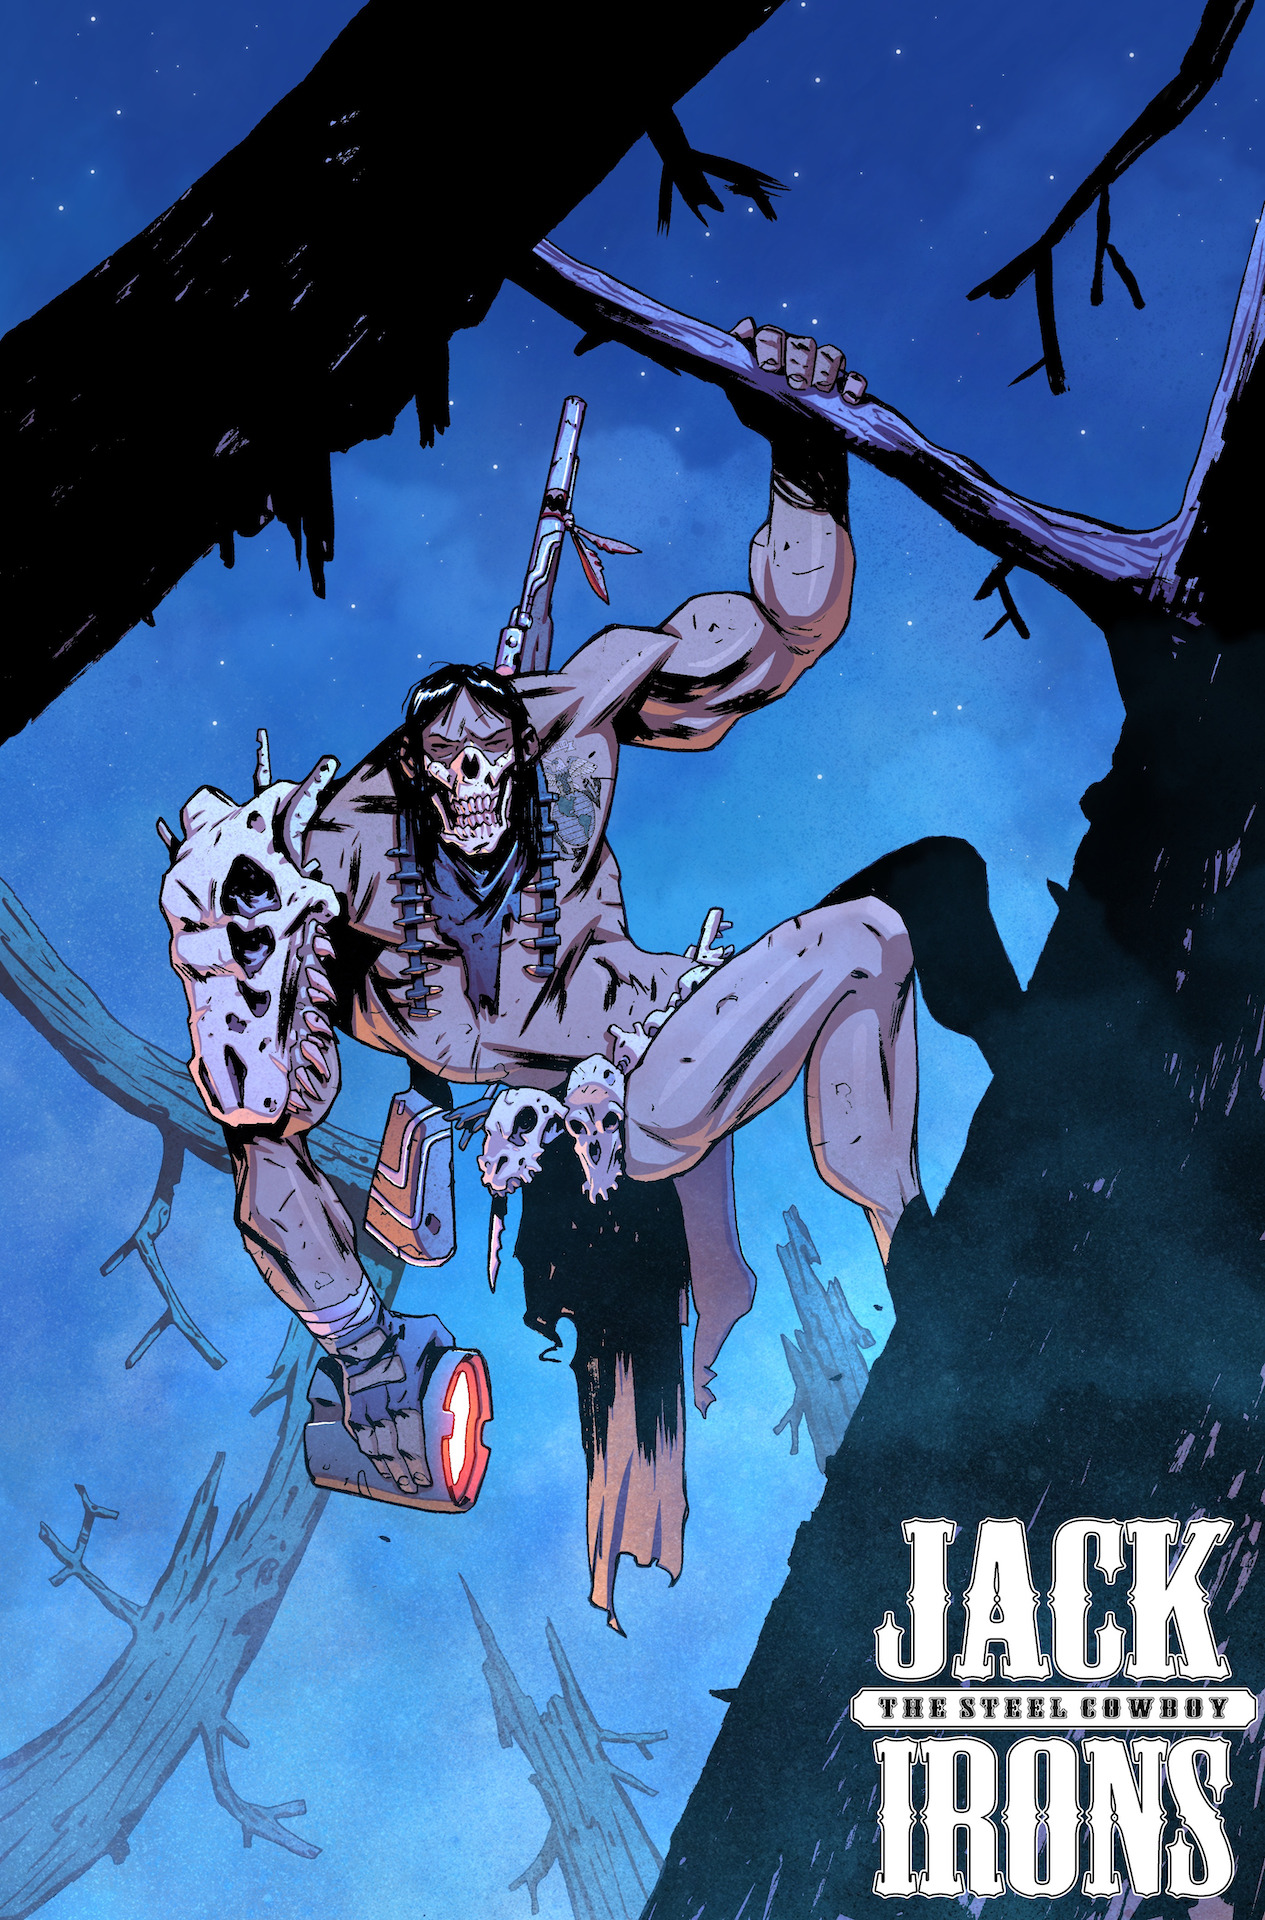 Jack Irons: The Steel Cowboy Issues #1-3